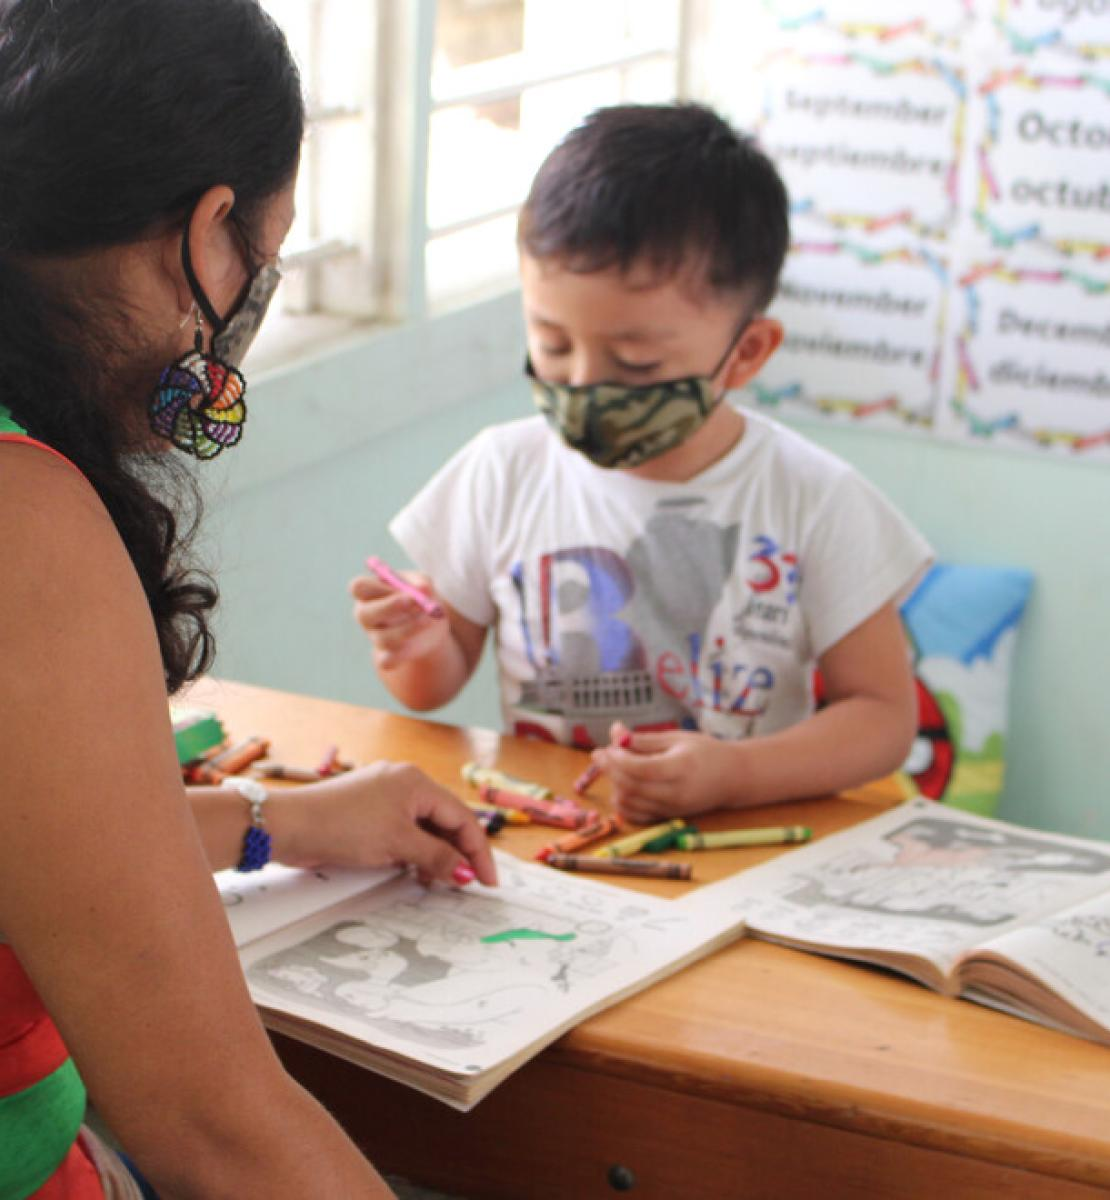 A woman and a child in face masks look over coloring books on a wooden table.